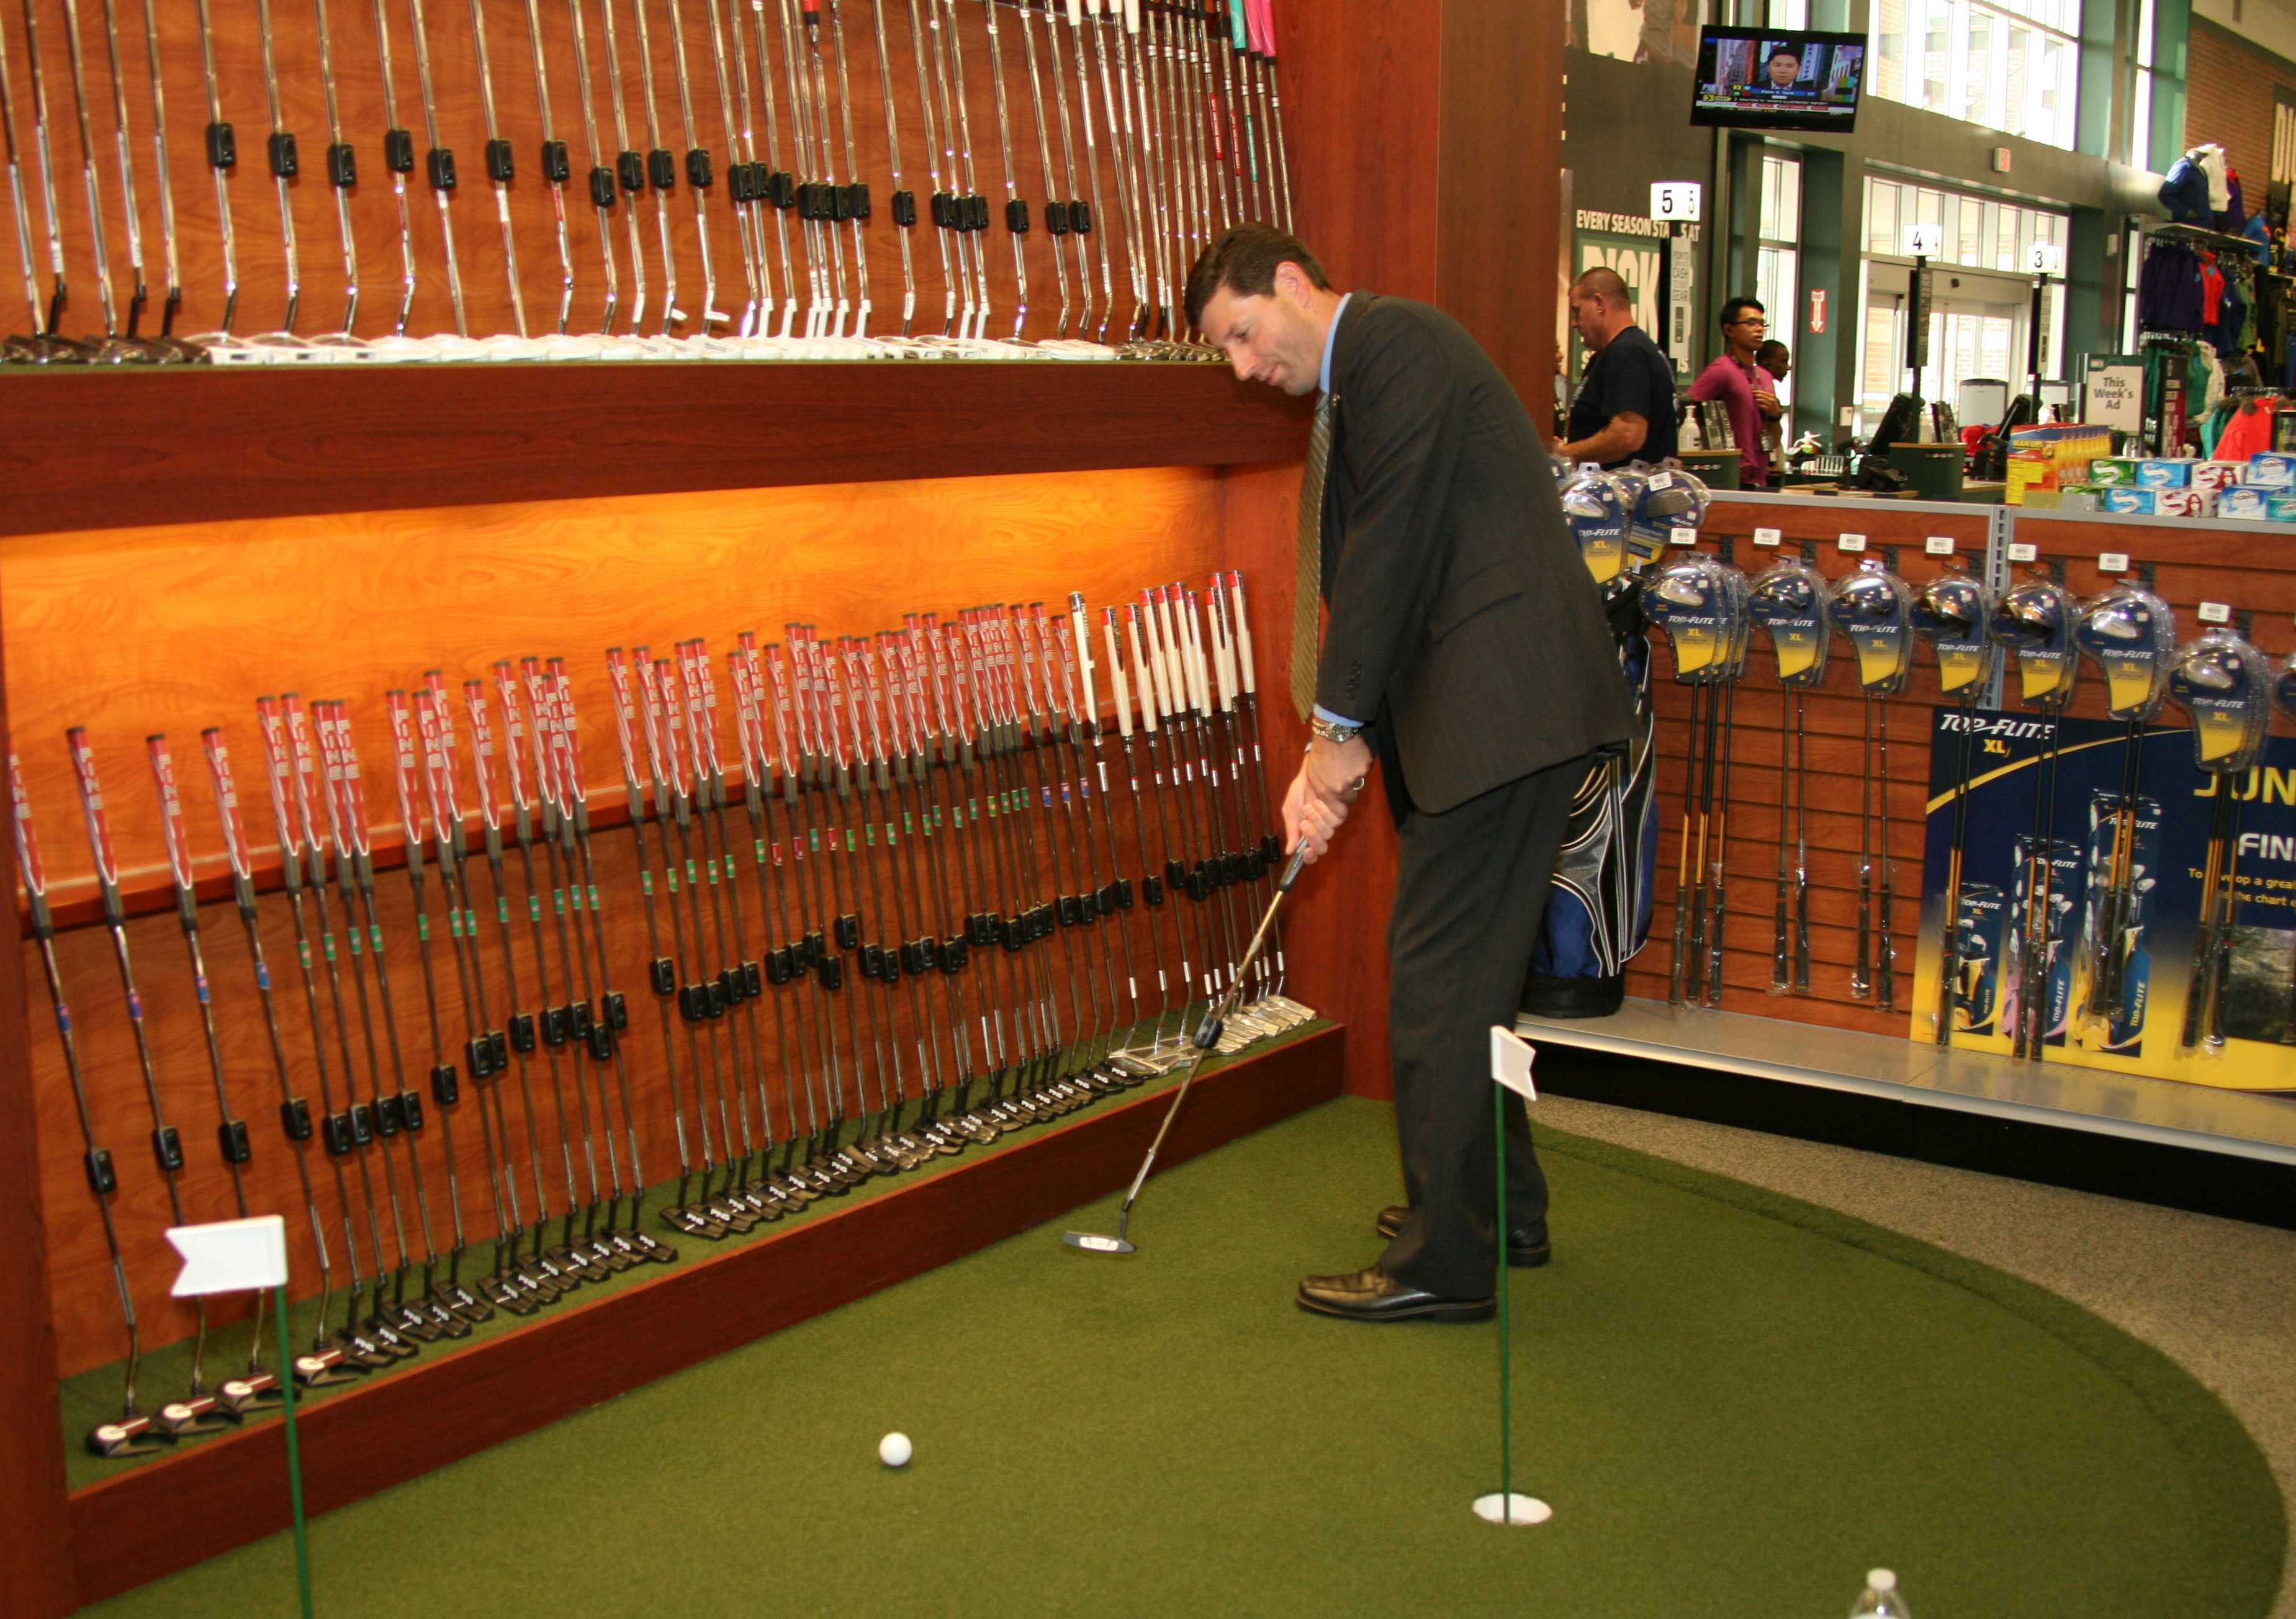 179216bd21094c46a4cc_Dicks_Sporting_Goods_Grand_Opening_-_09-10_2013_0090.jpg